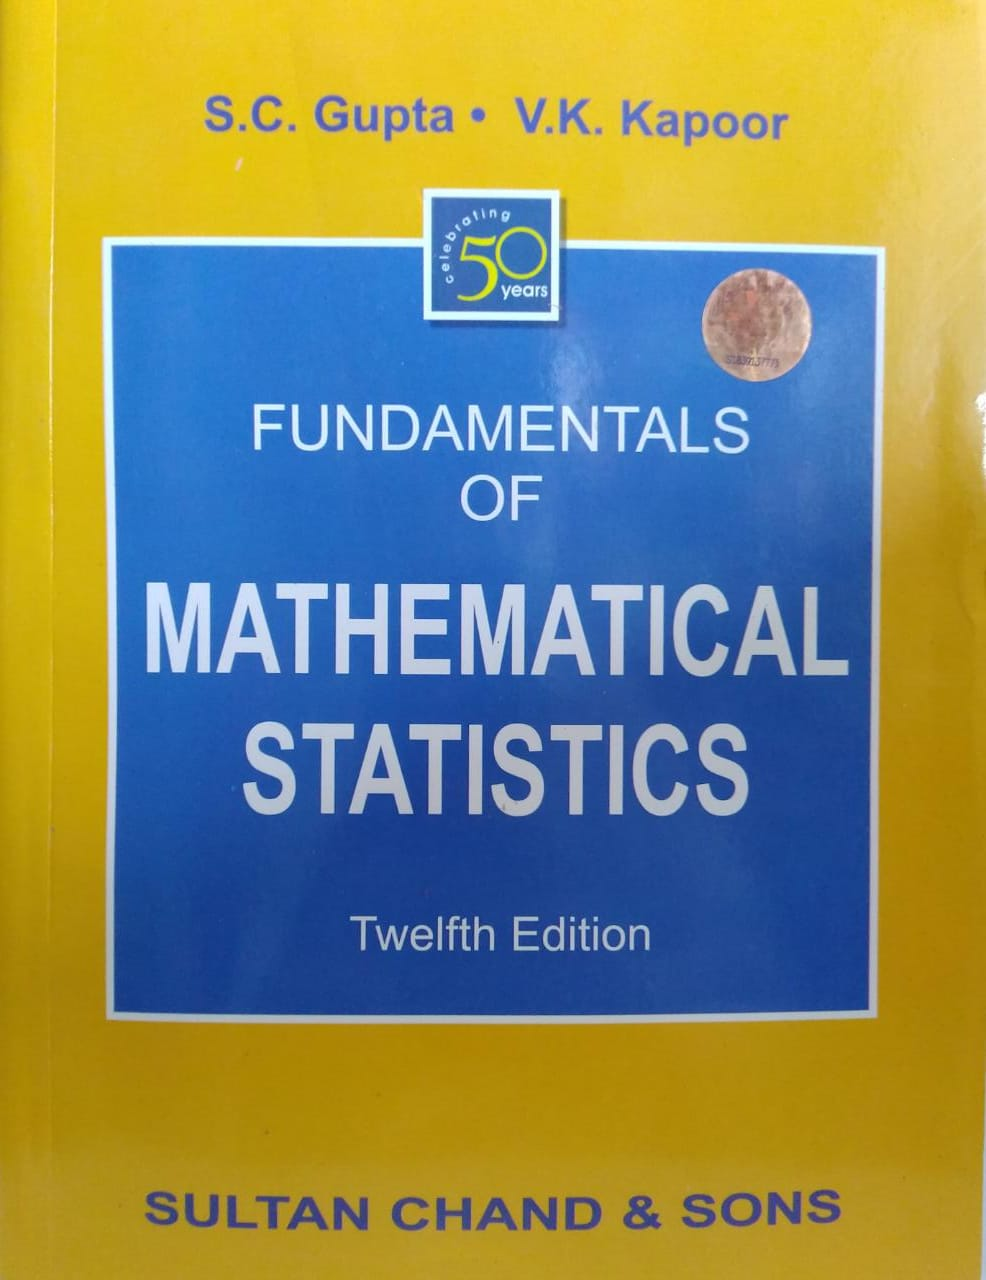 Fundamentals of Mathematical Statistics by S.C. Gupta & V.K. Kapoor in New Edition